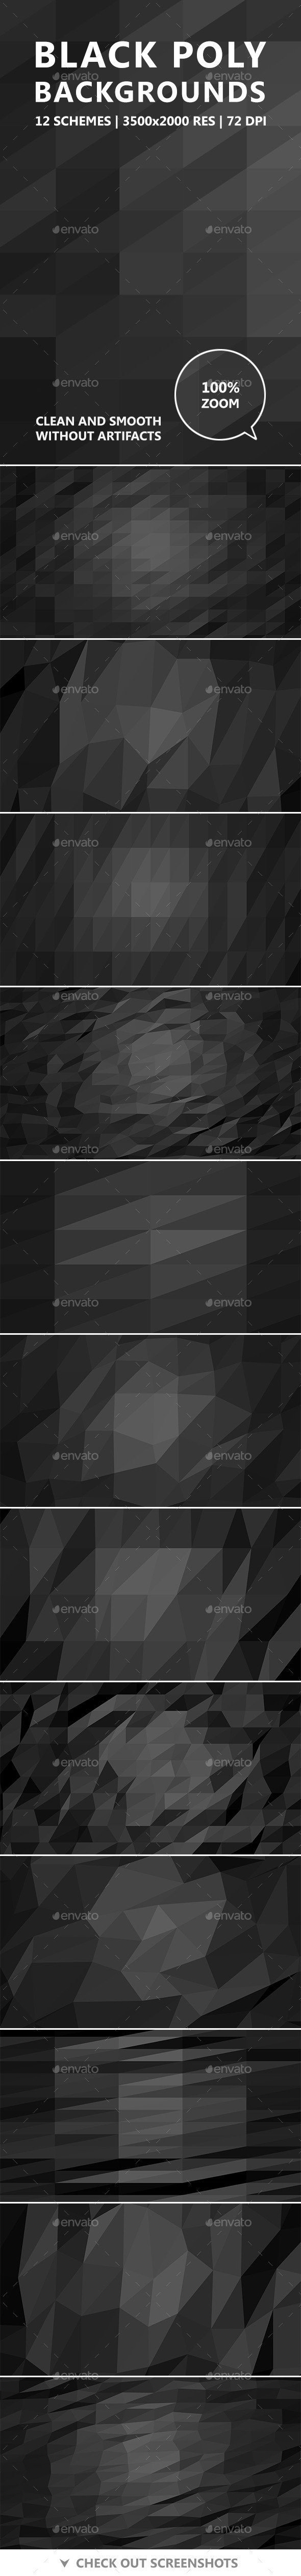 GraphicRiver Black Poly Backgrounds 11617185